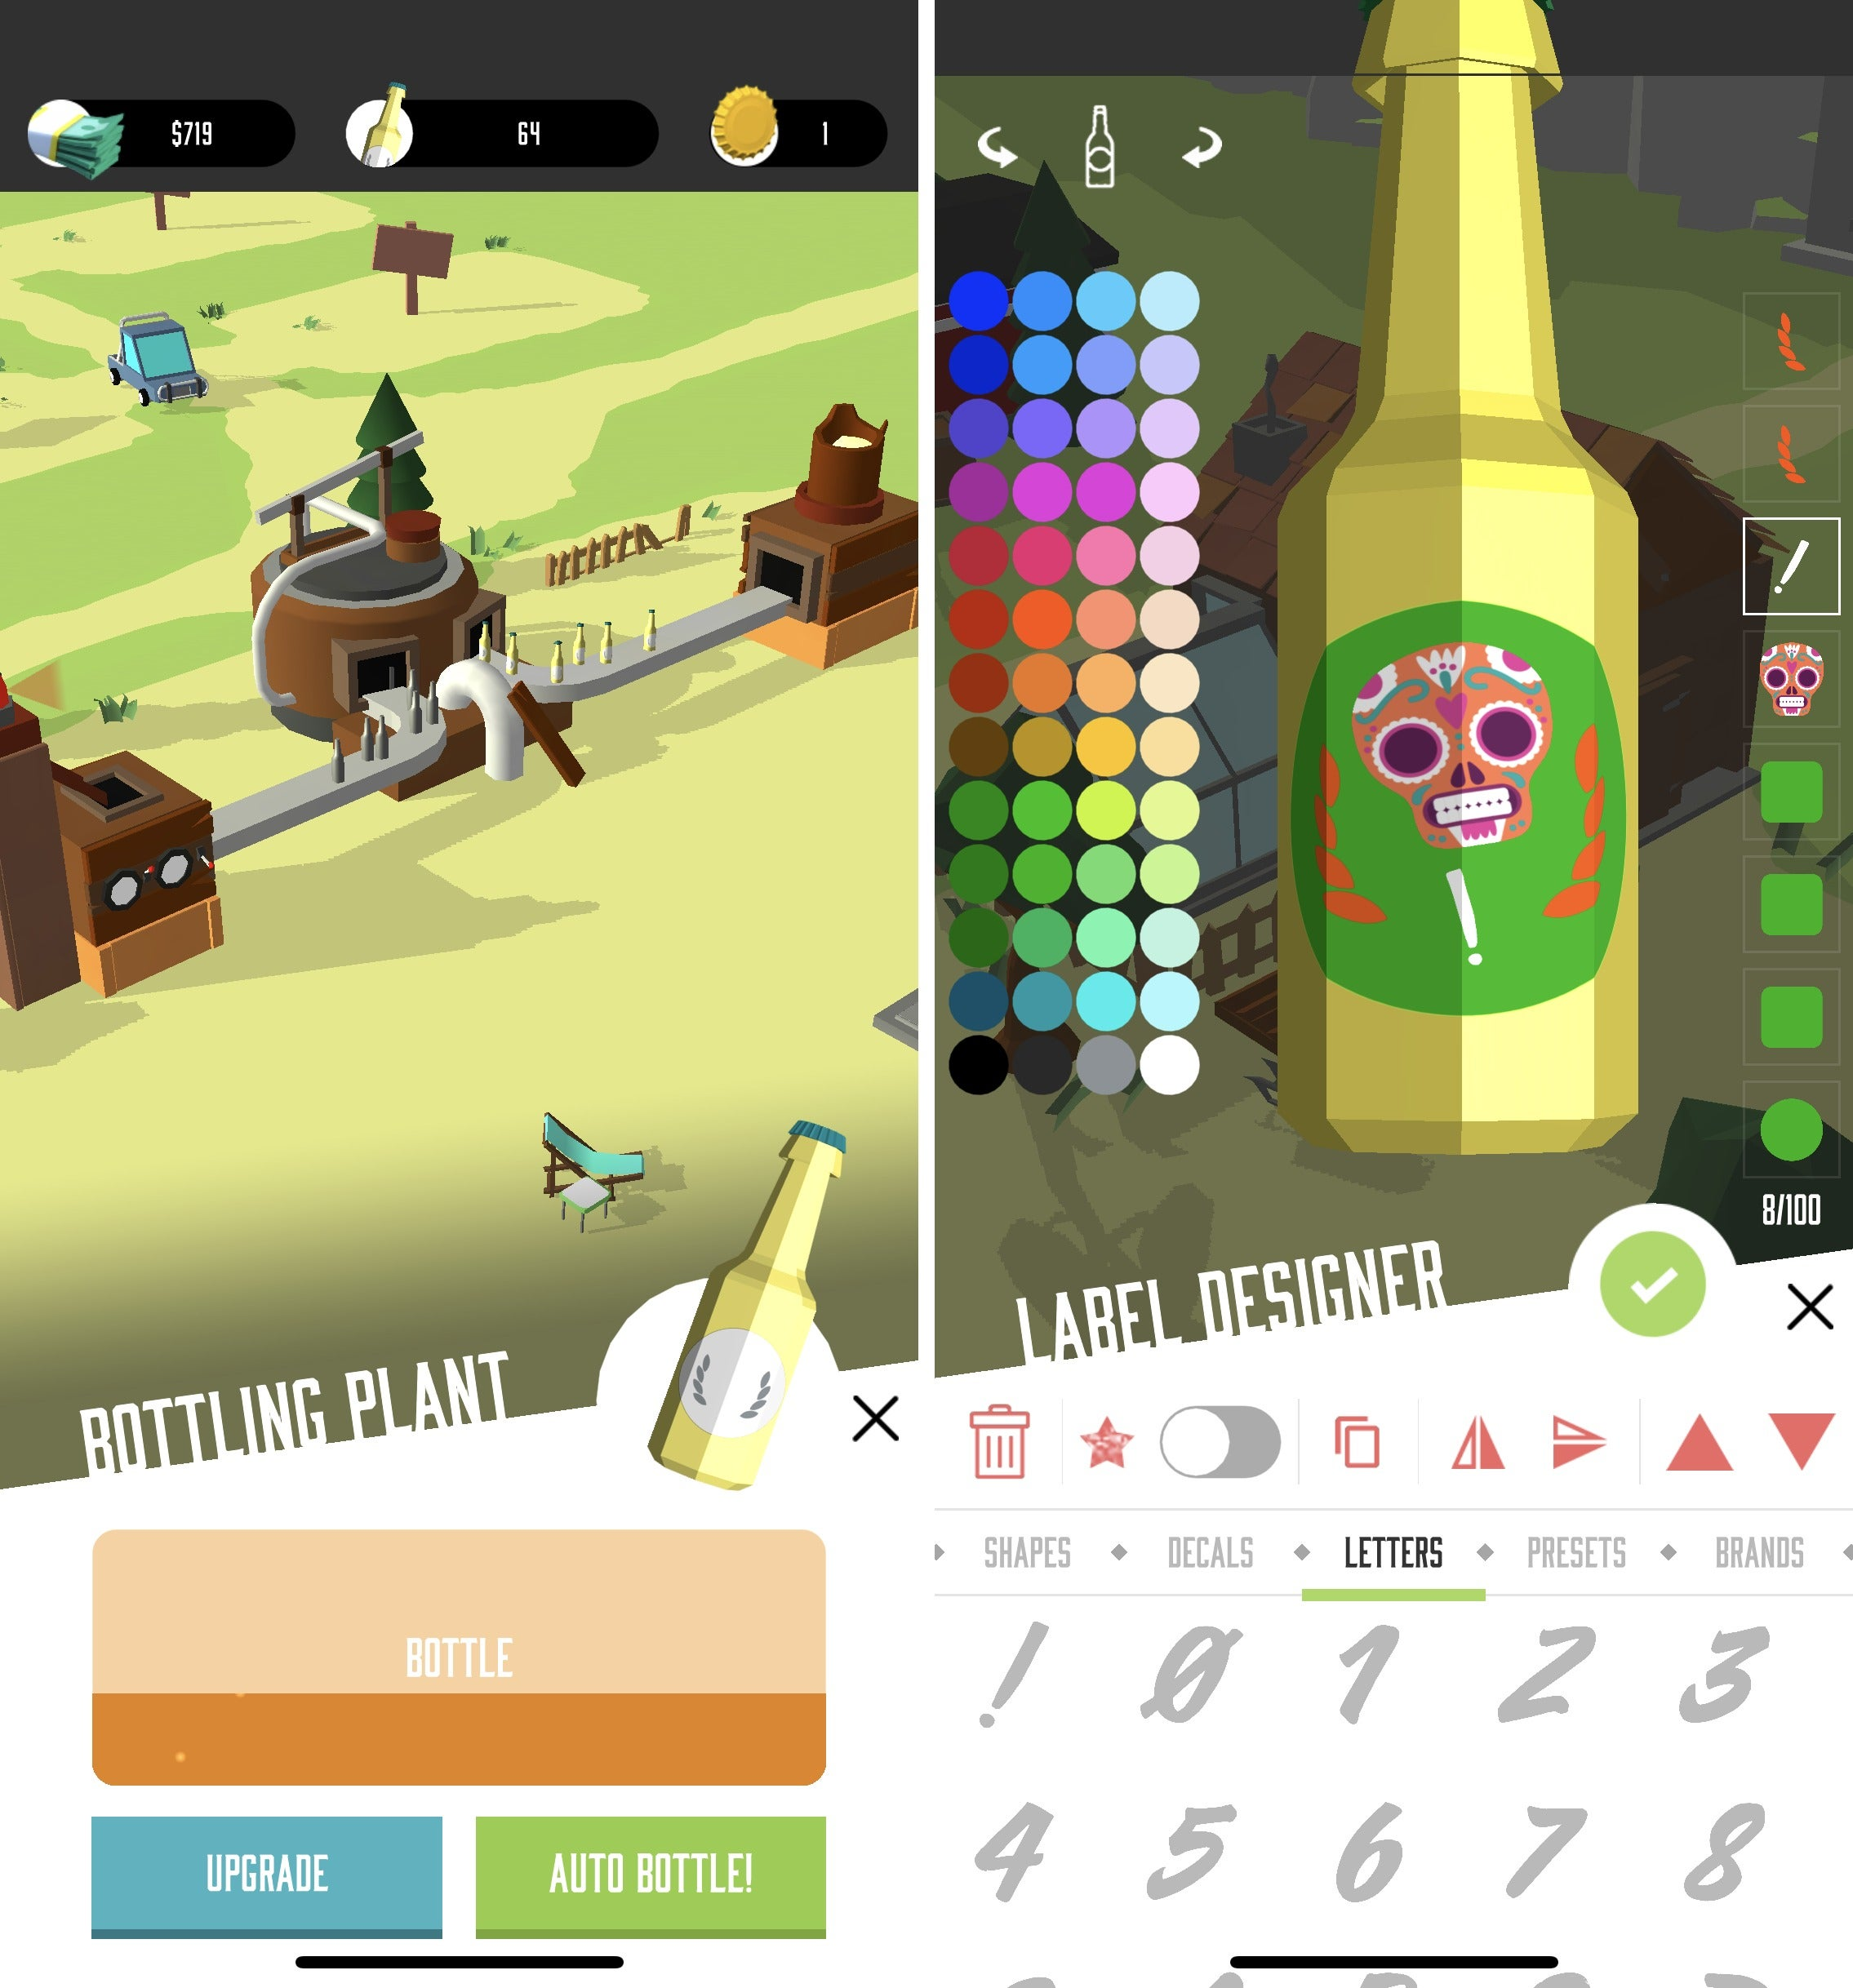 The 10 iPhone and iPad games you need to play from April